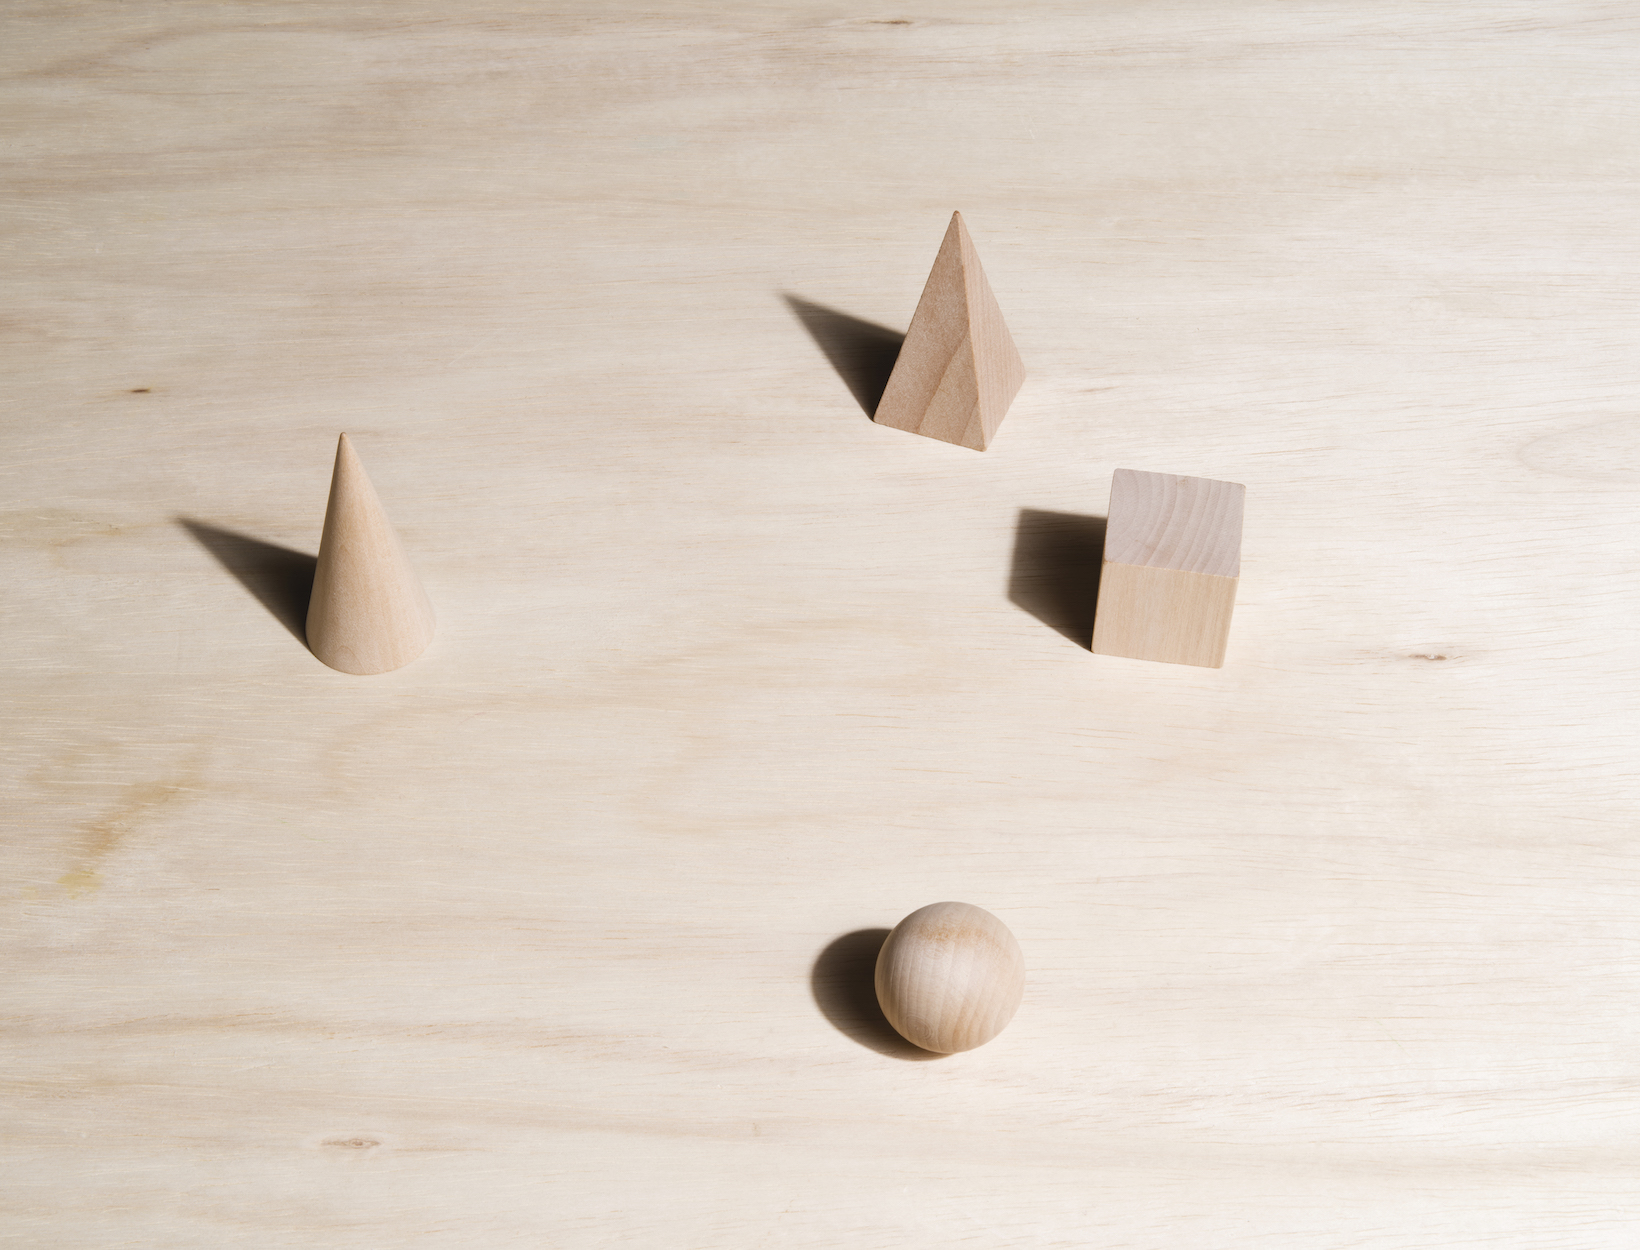 Four wooden blocks